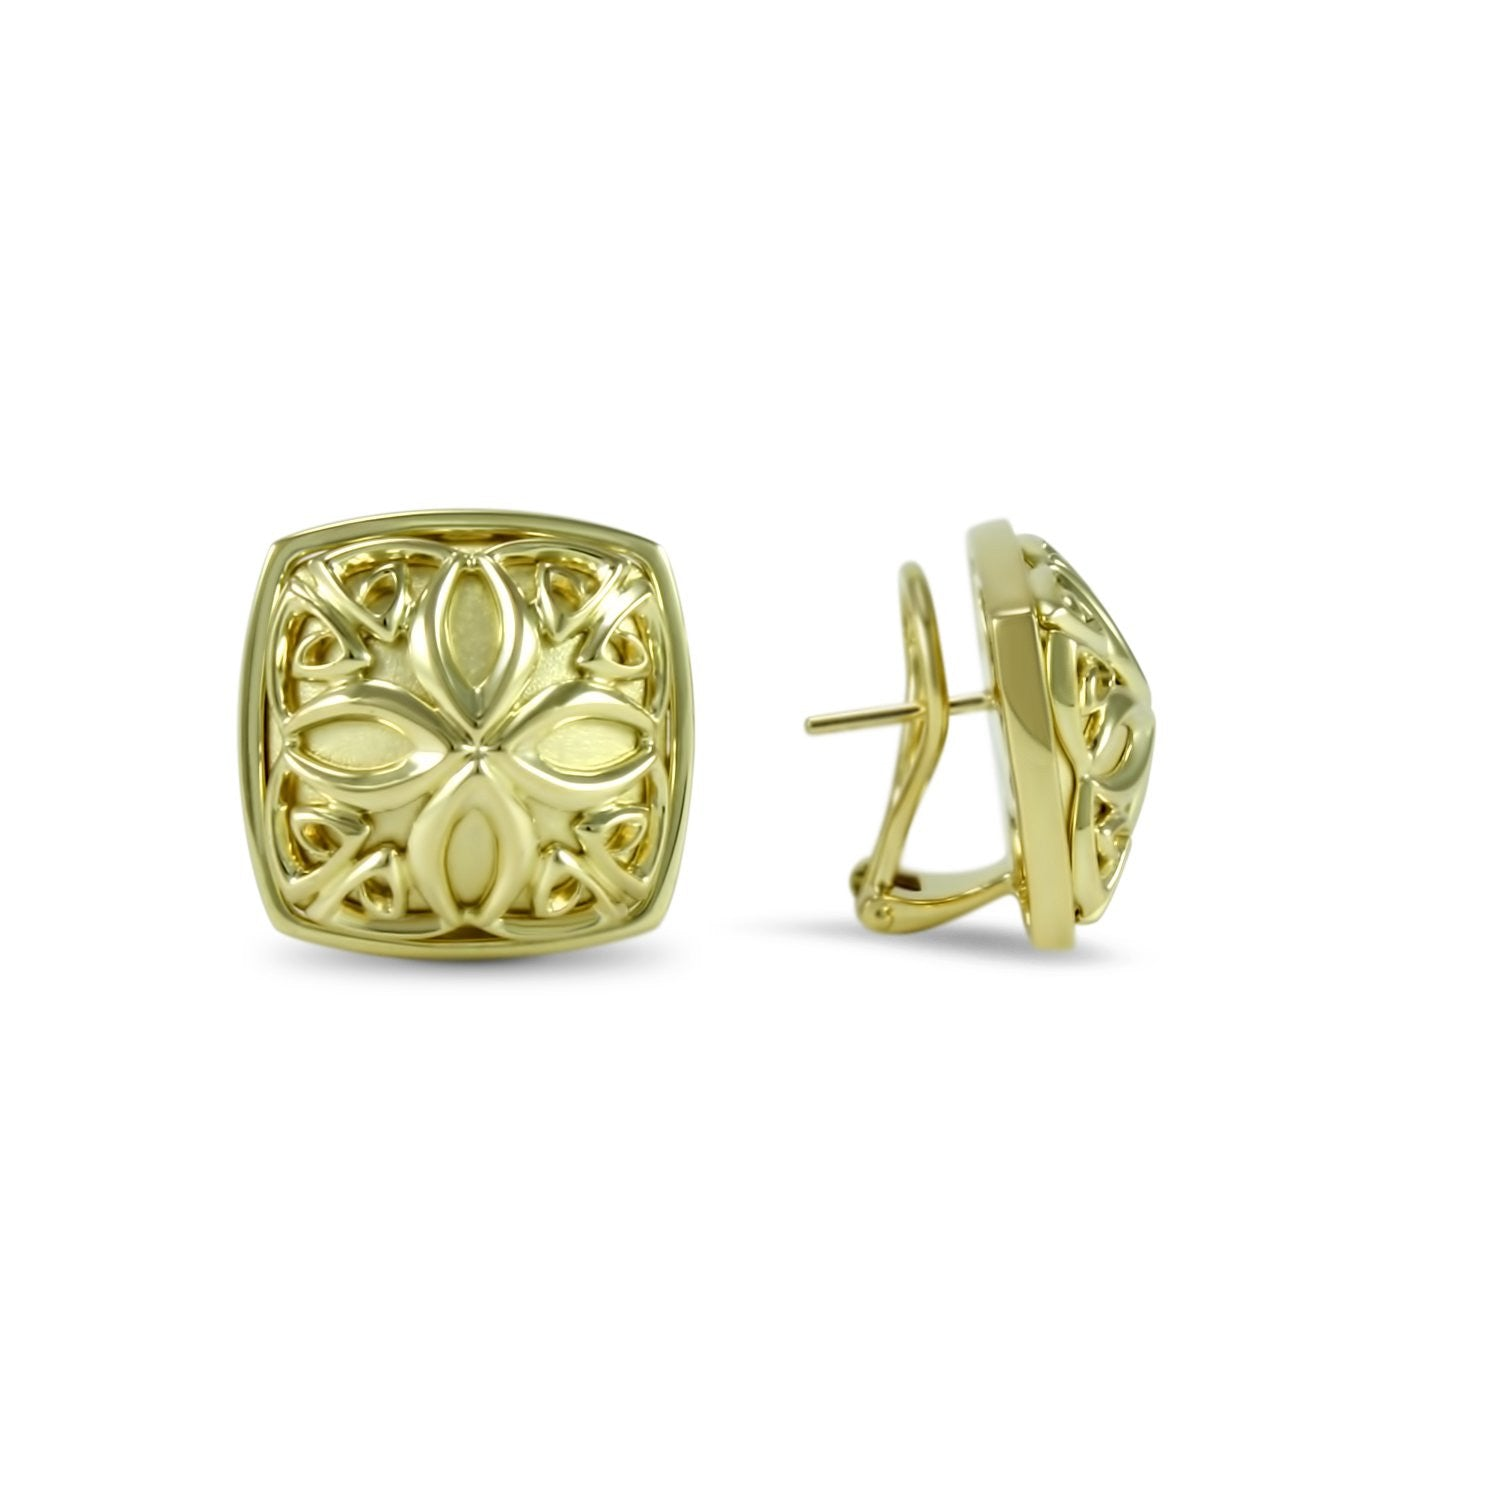 Insignia Empress Signature Medallion Earring